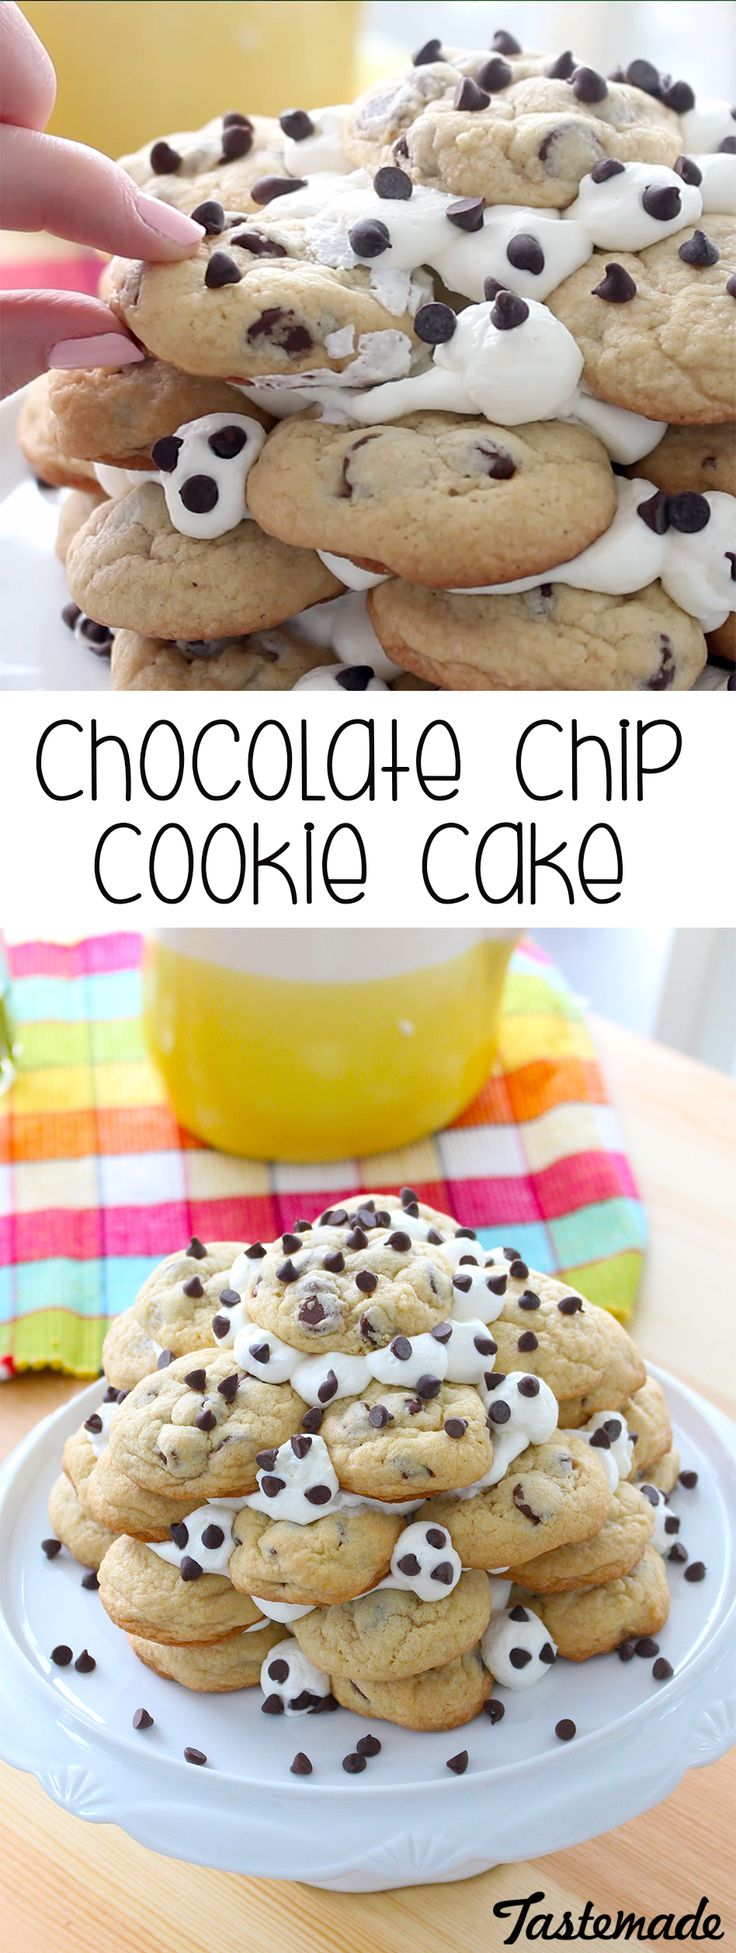 A little whip cream turns chocolate chip cookies into so much more.